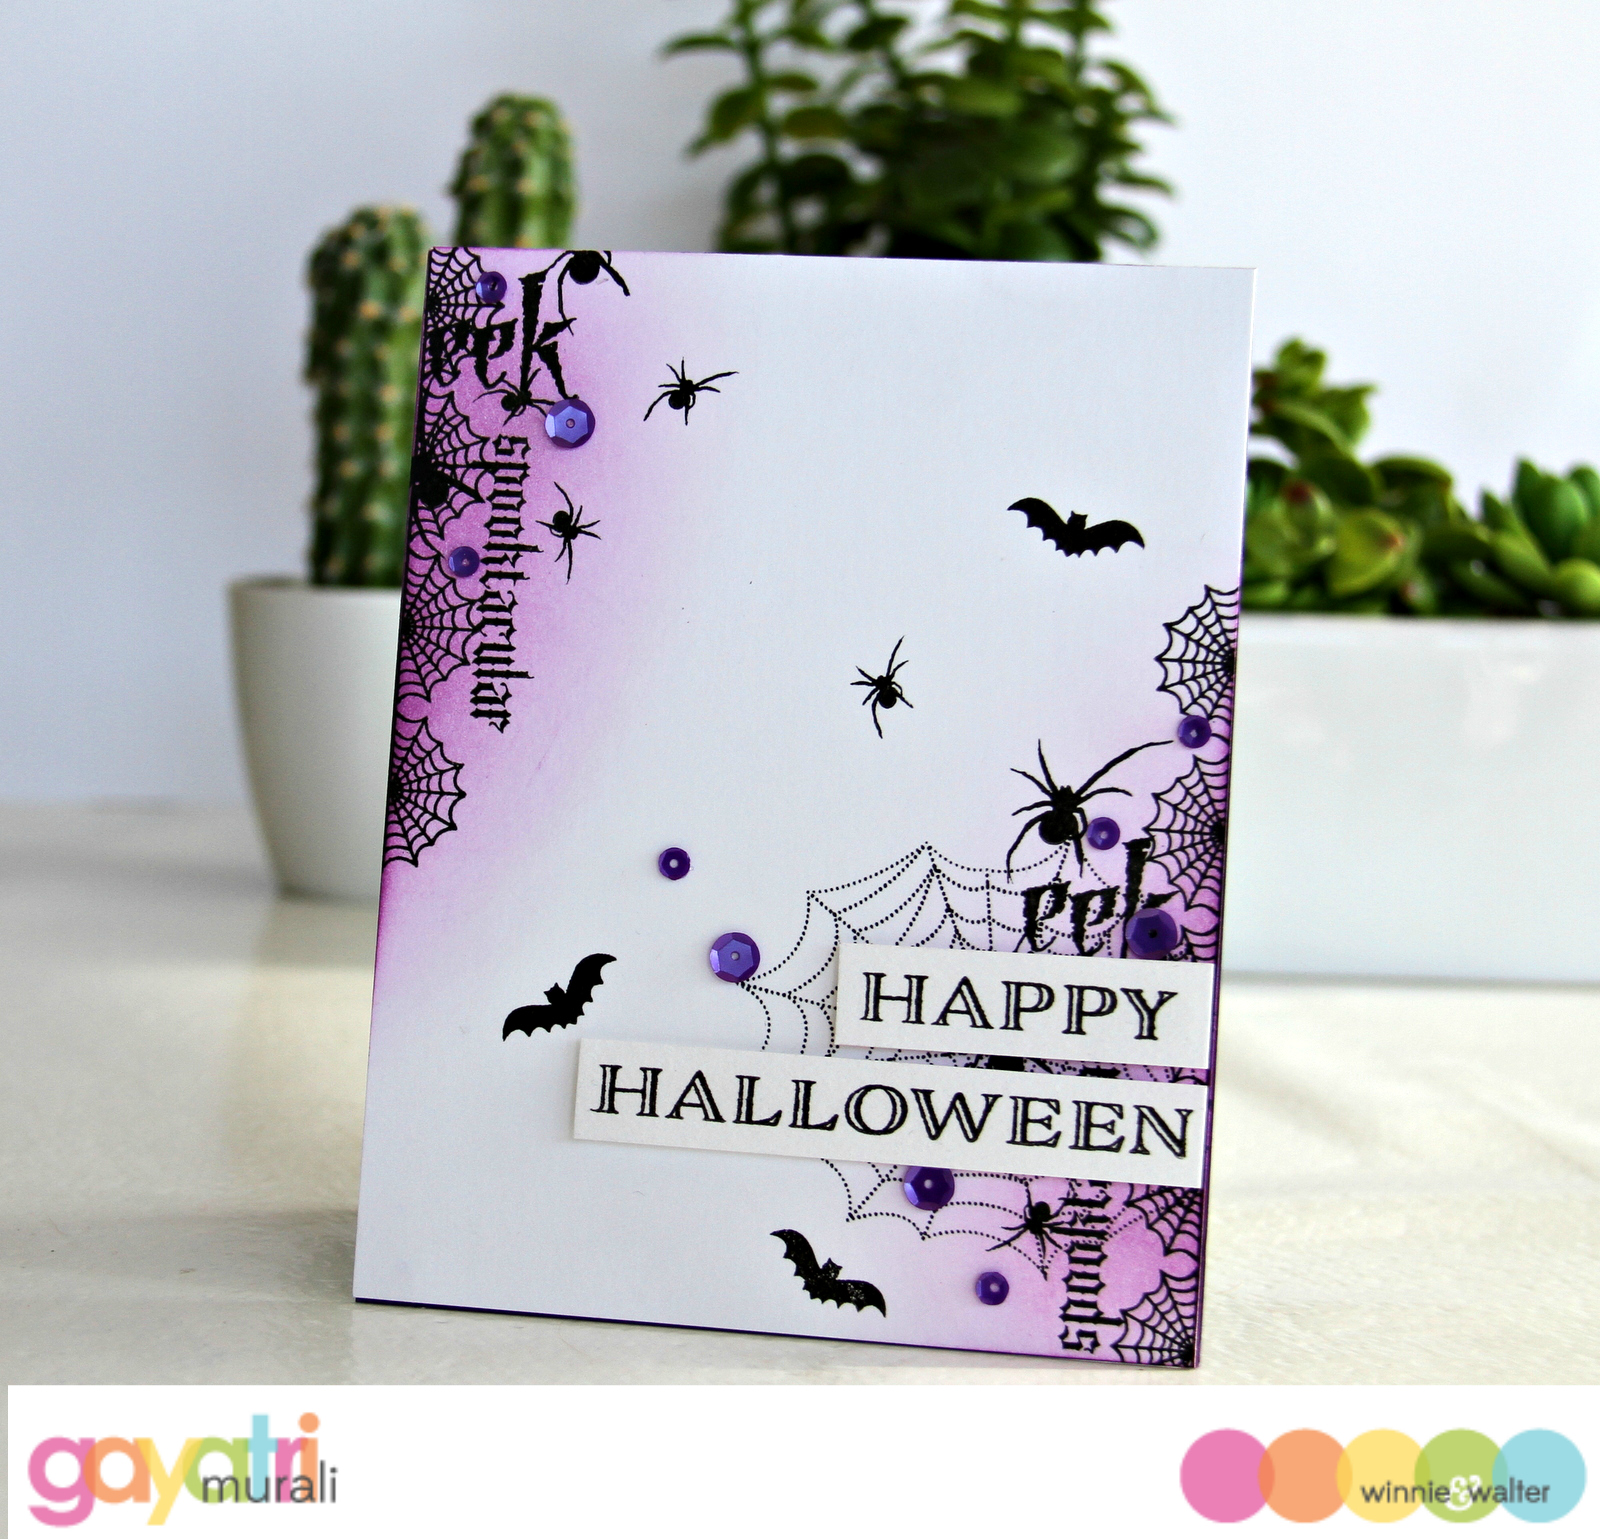 Gayatari_Happy Halloween card1